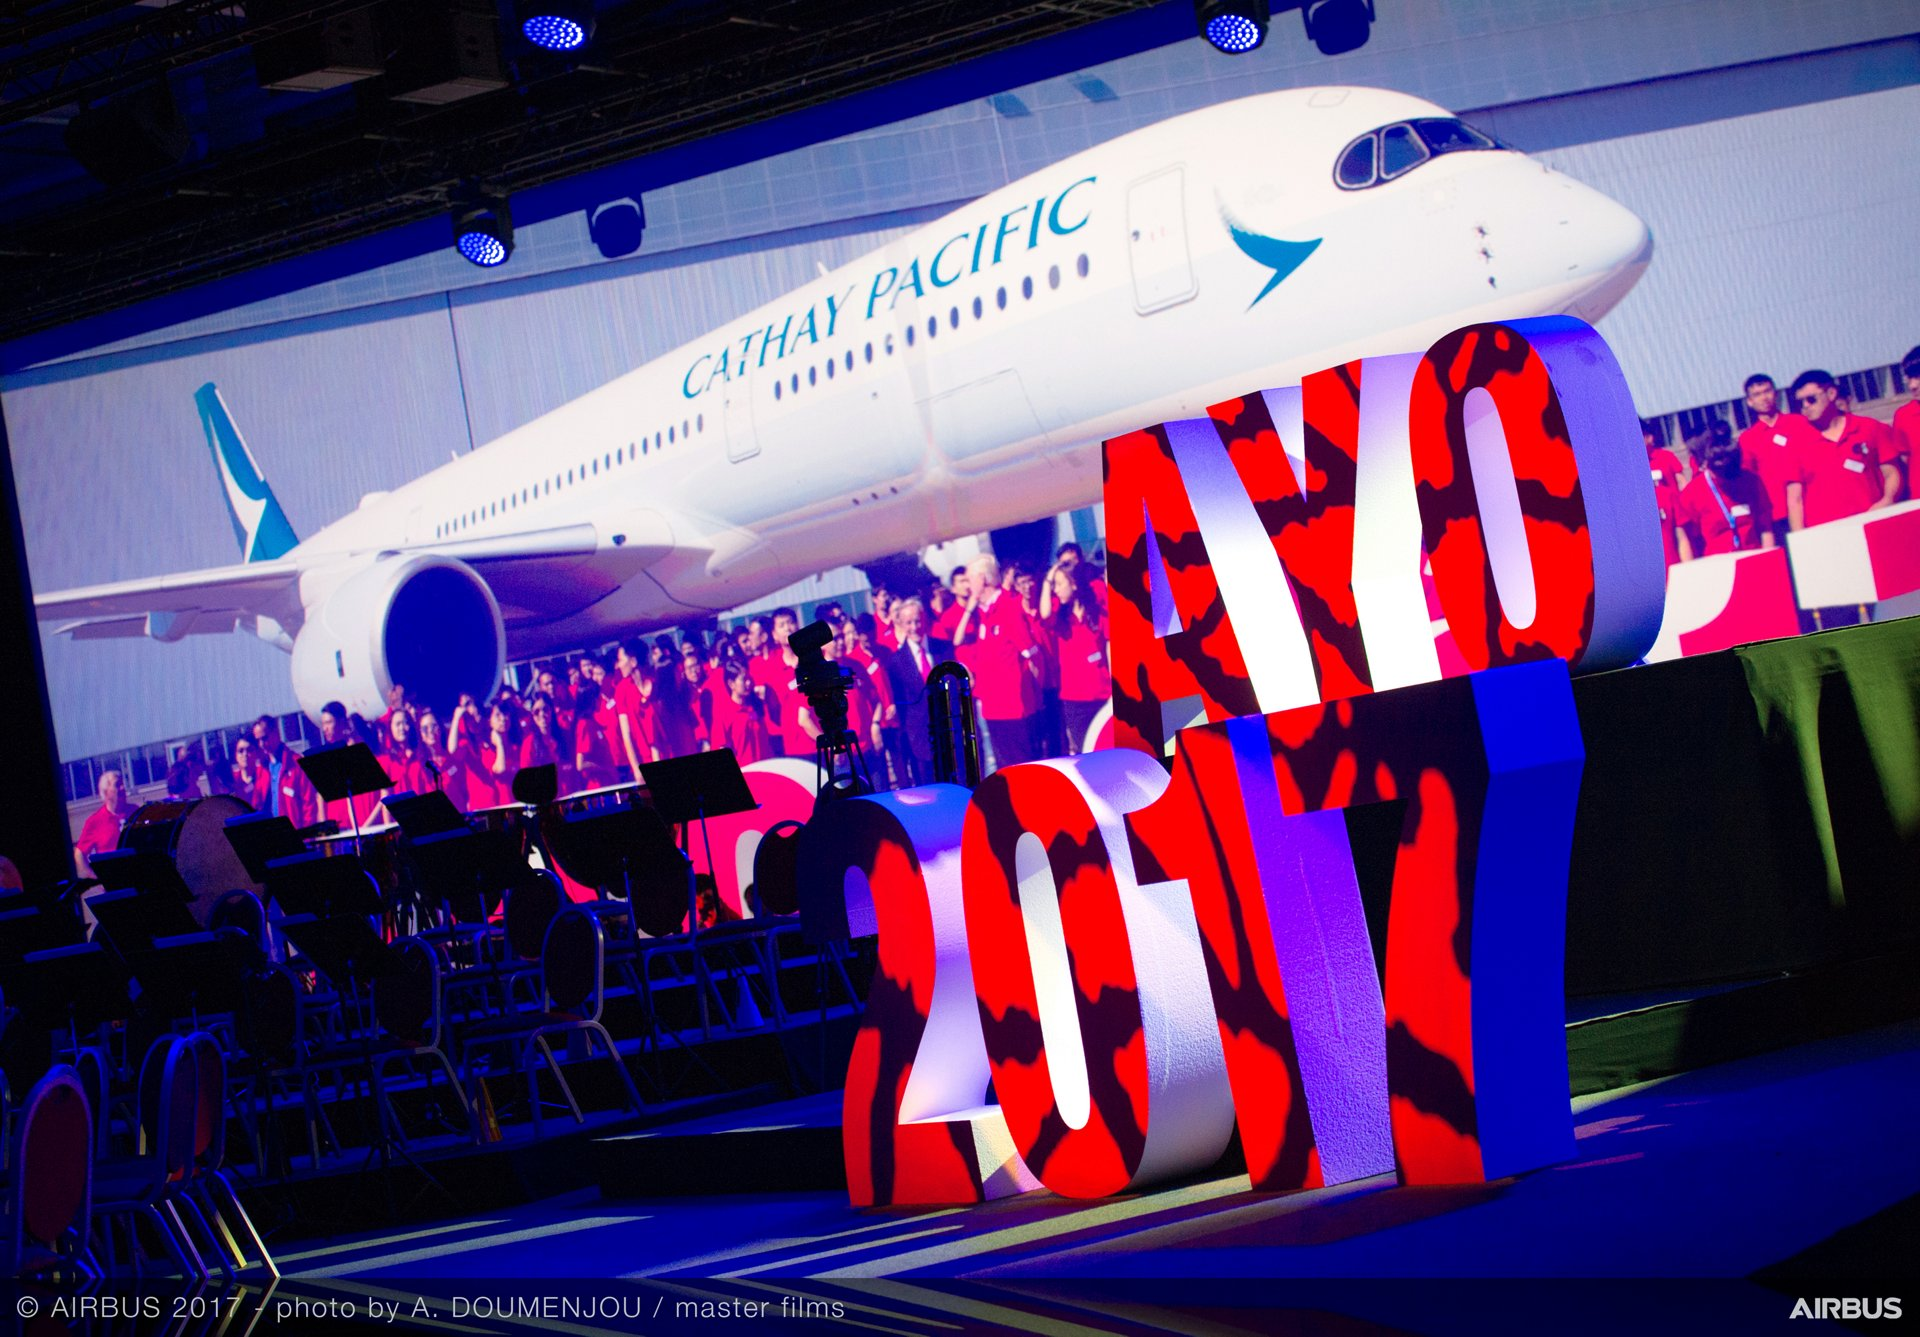 The exceptional partnership between Airbus and Cathay Pacific Airways was marked by a unique concert in Toulouse, France this week that celebrated the 20th anniversary of the Hong Kong Special Administrative Region – and coincided with Cathay Pacific's latest announcement for Airbus jetliners.